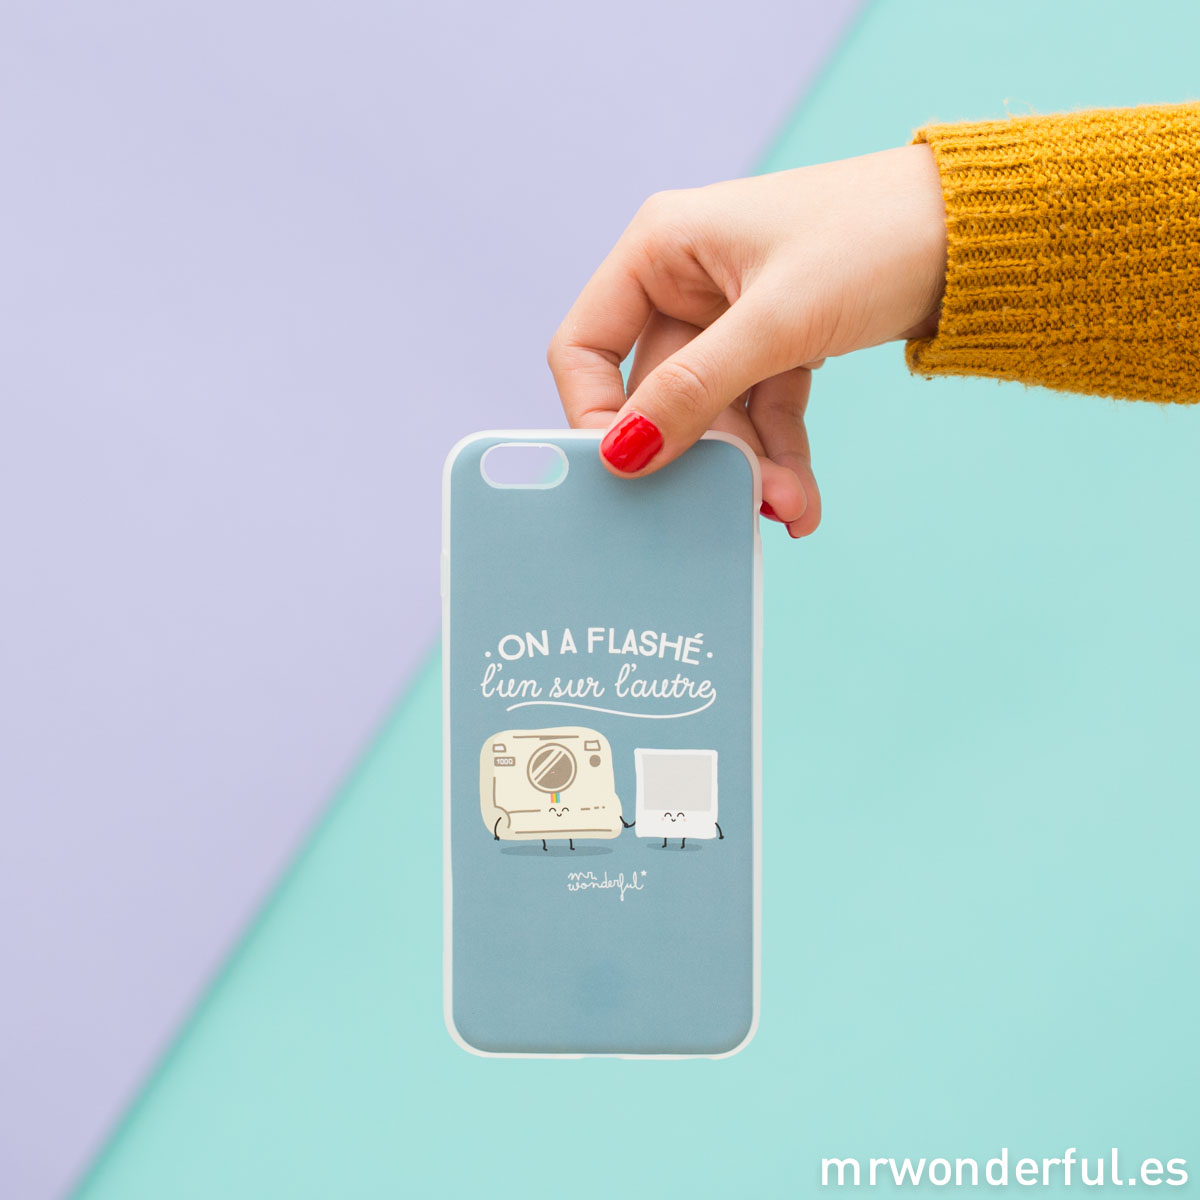 mrwonderful_WOA03261_8436557681379_carcasa_iphone-6-plus_on-a-flashe-lun-sur-lautre_FR-18-Editar